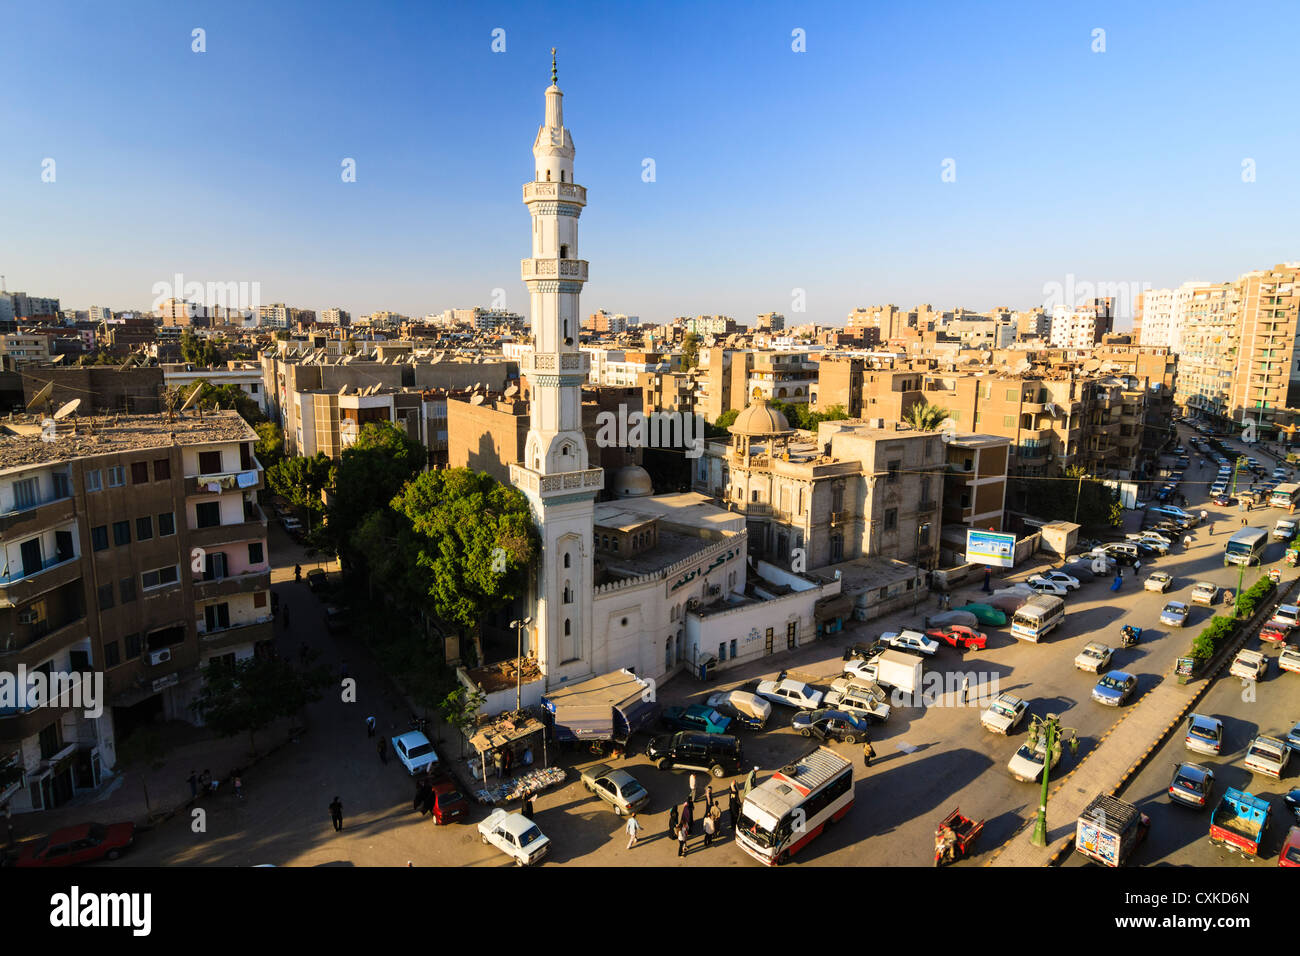 Overview of Asyut downtown with El Helaly mosque. Egypt - Stock Image